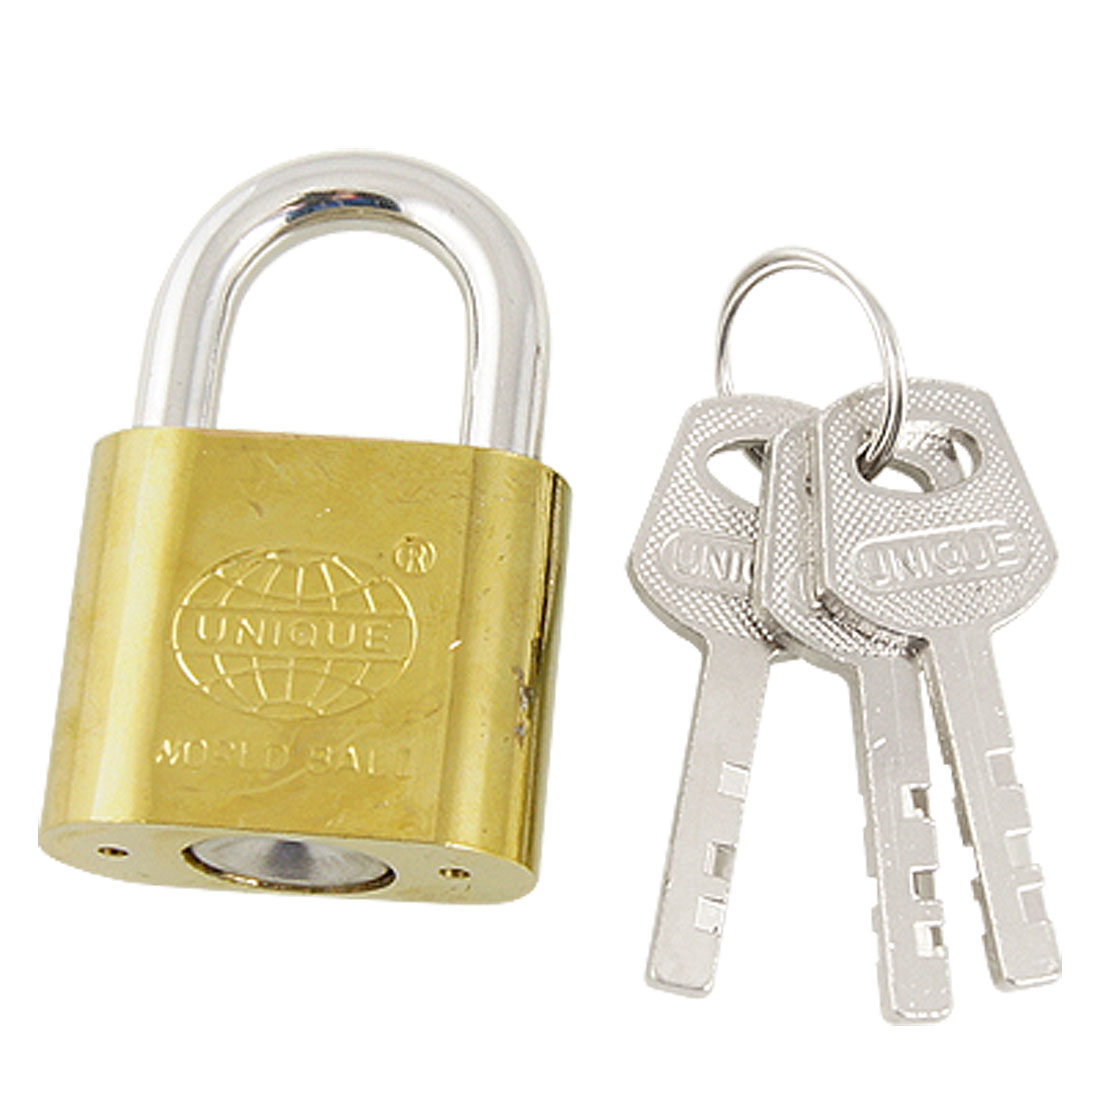 30mm Width Door Drawer Cabinet Safety Key Locking Padlock Lock Gold Tone